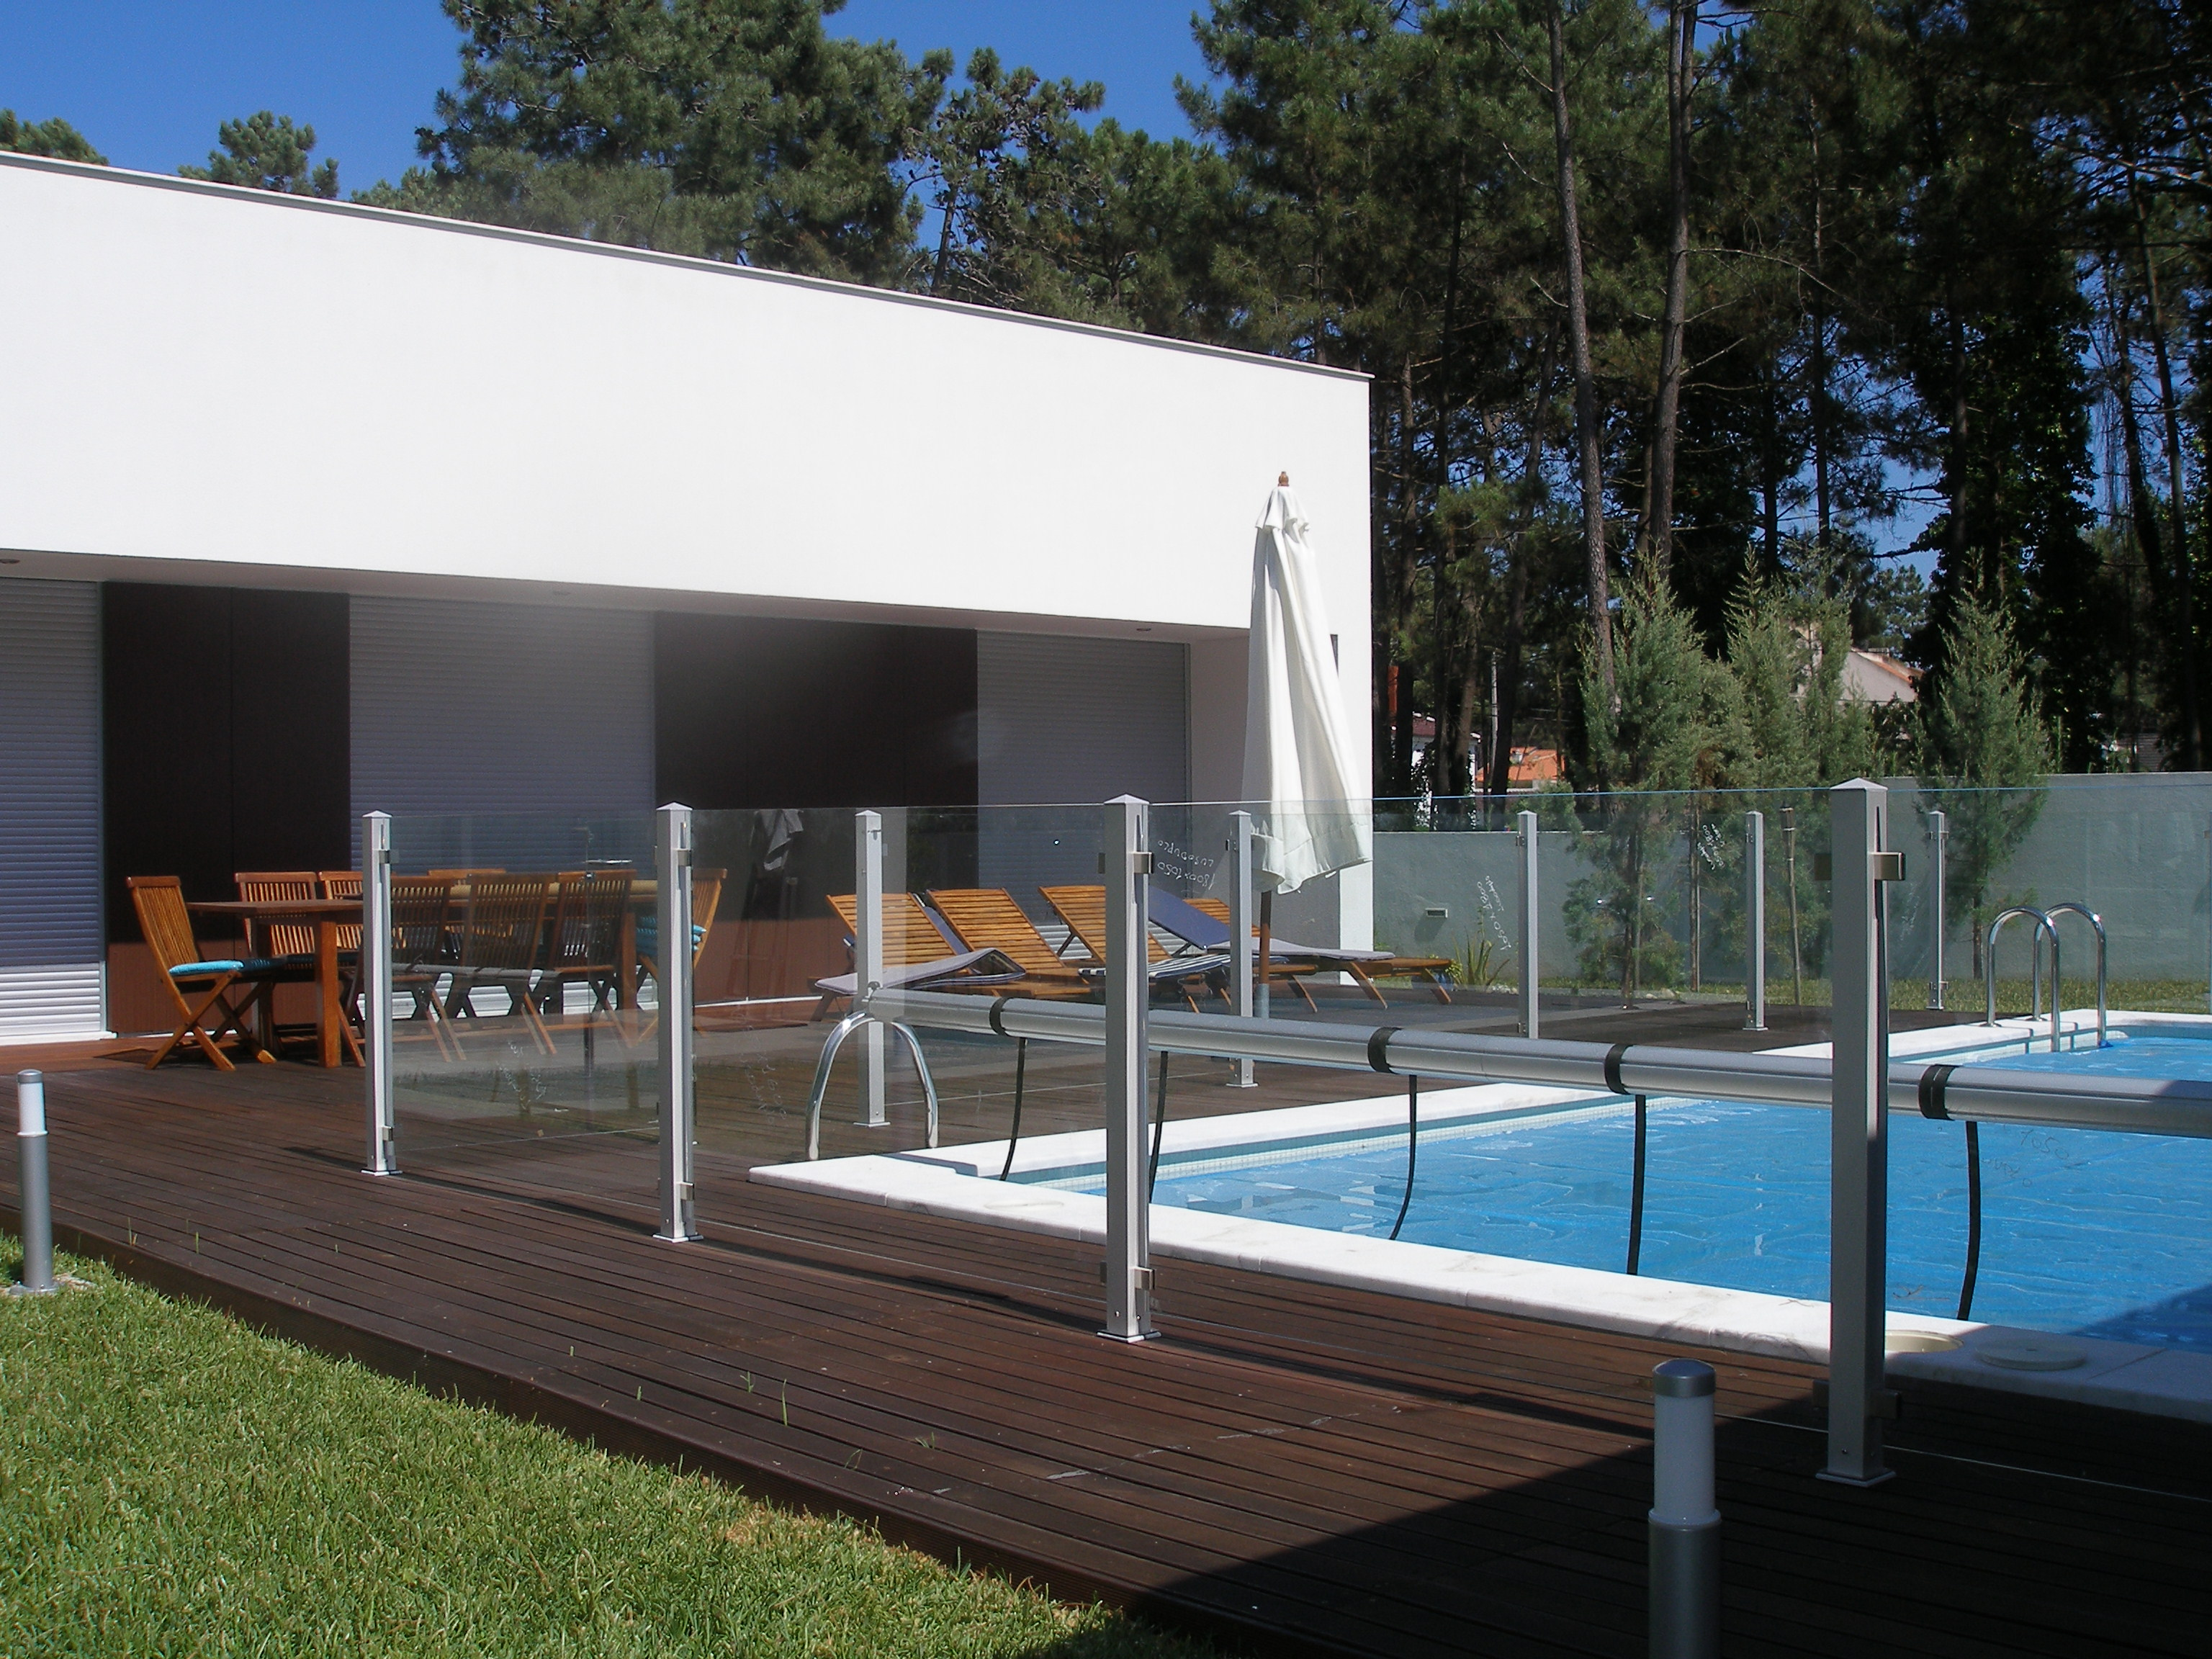 Valla Piscina Segunda Mano Top Valla De Pvc Picket Fence